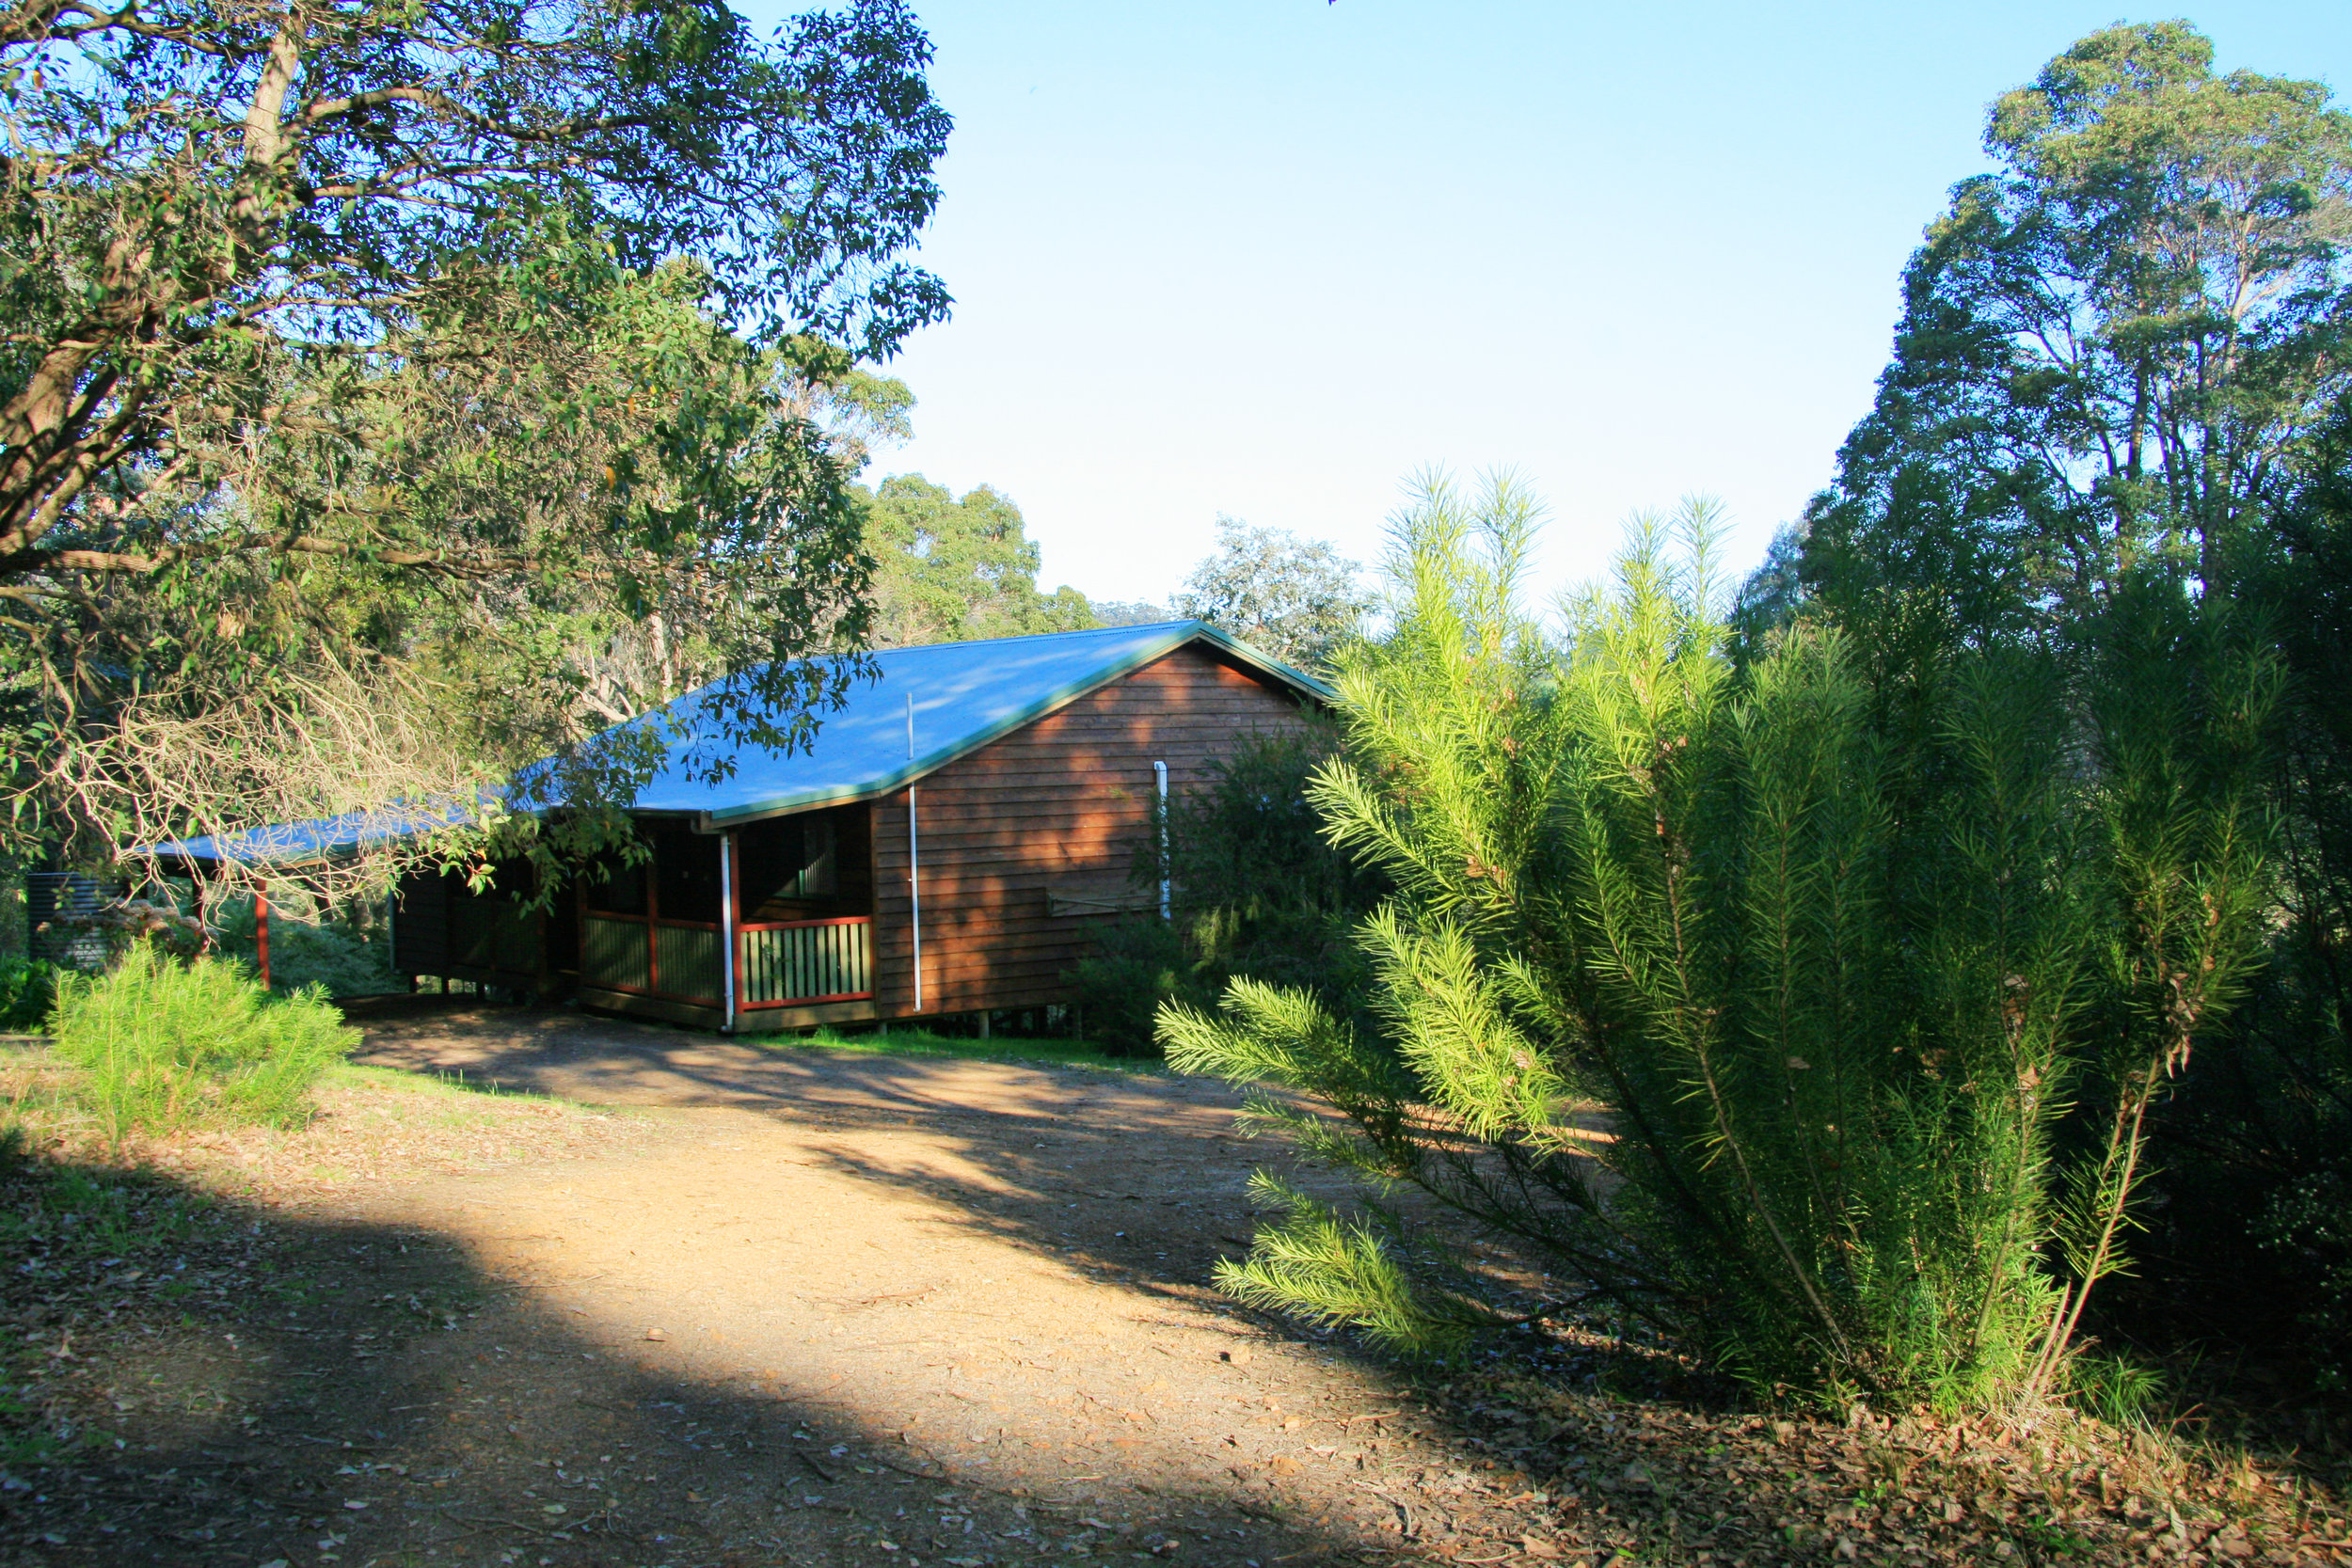 Misty Valley Country Cottages, set on 110 acres in Denmark WA